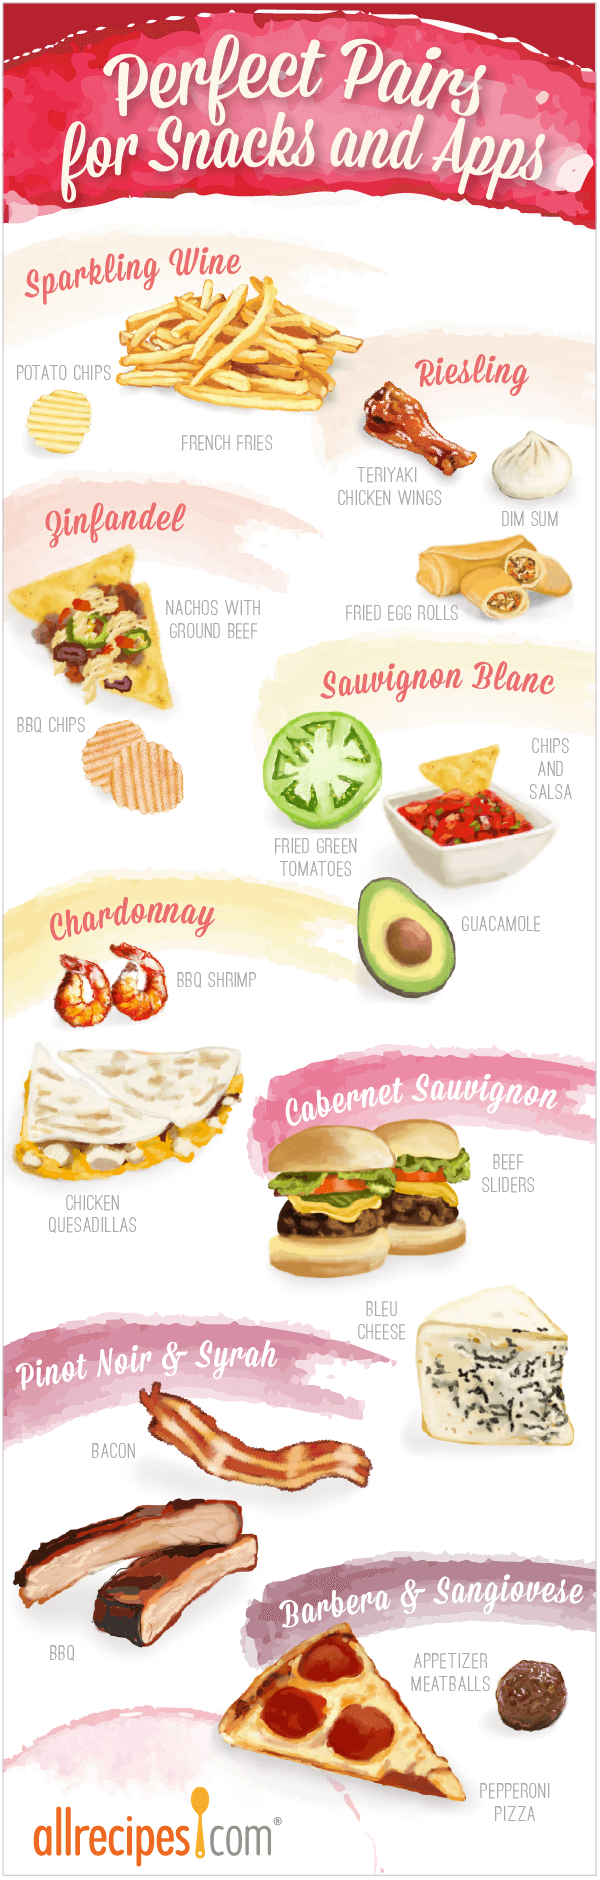 Perfect pairs for snacks and apps